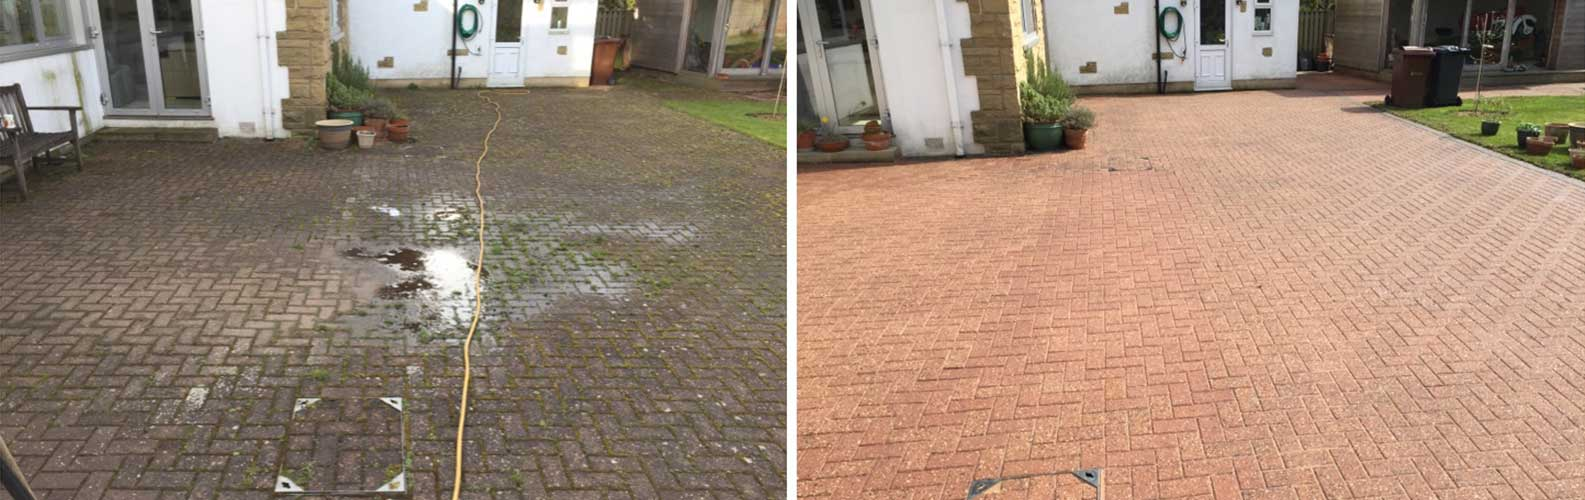 driveway-patio-cleaning